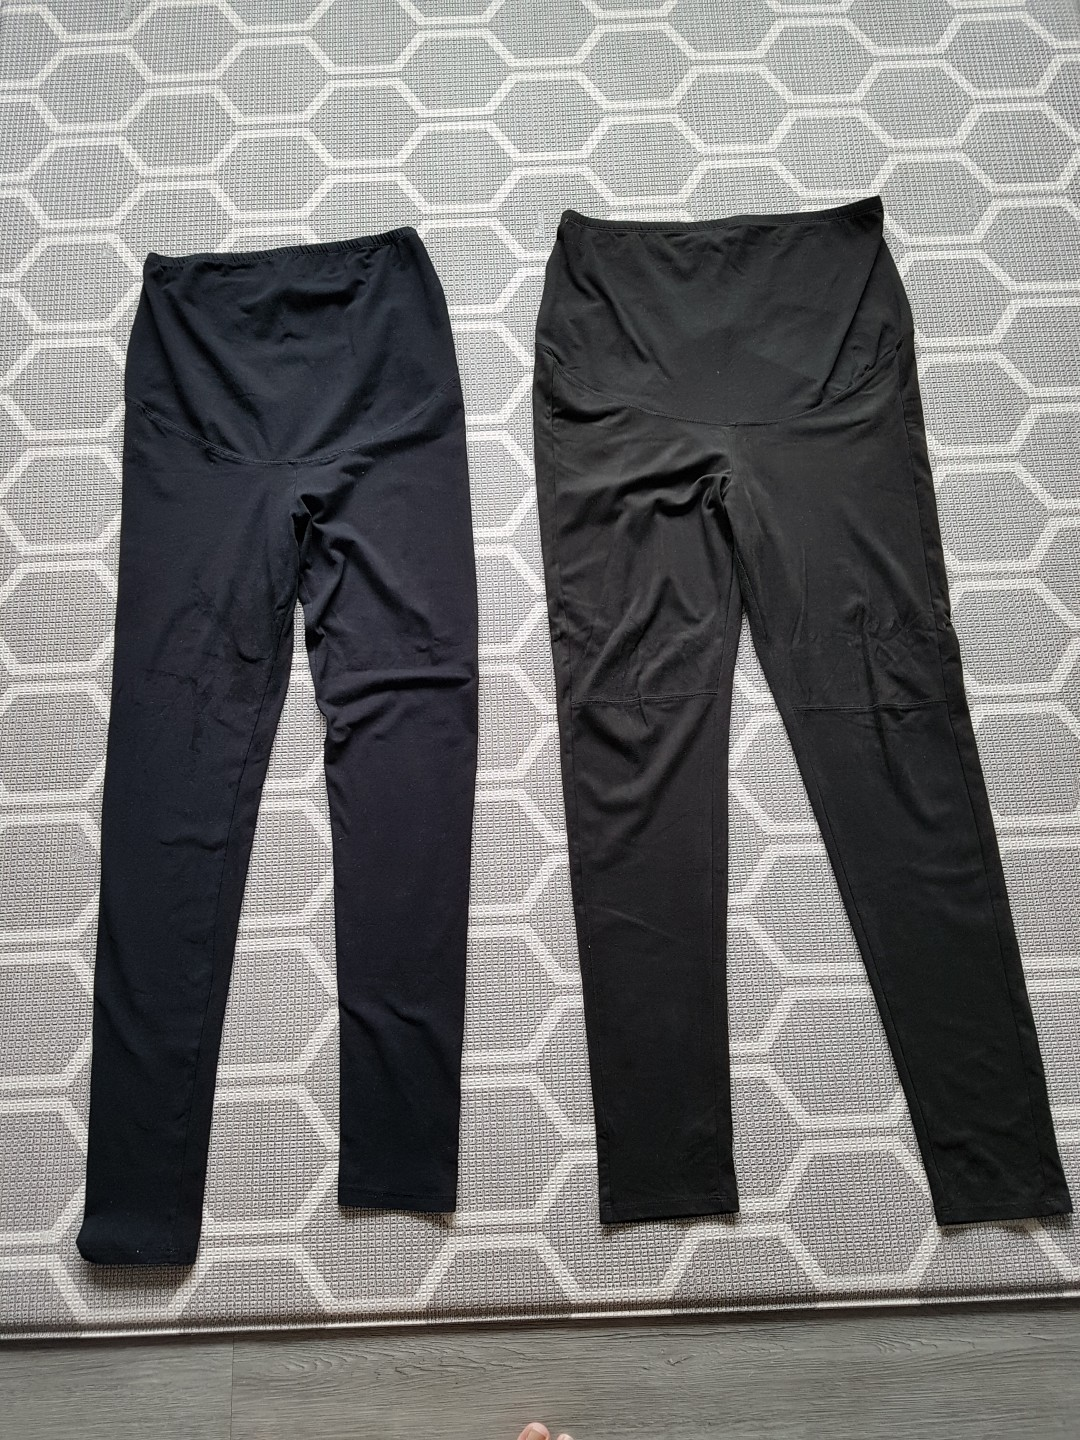 68ad46cc0001a Maternity pants H&M, Babies & Kids, Maternity on Carousell